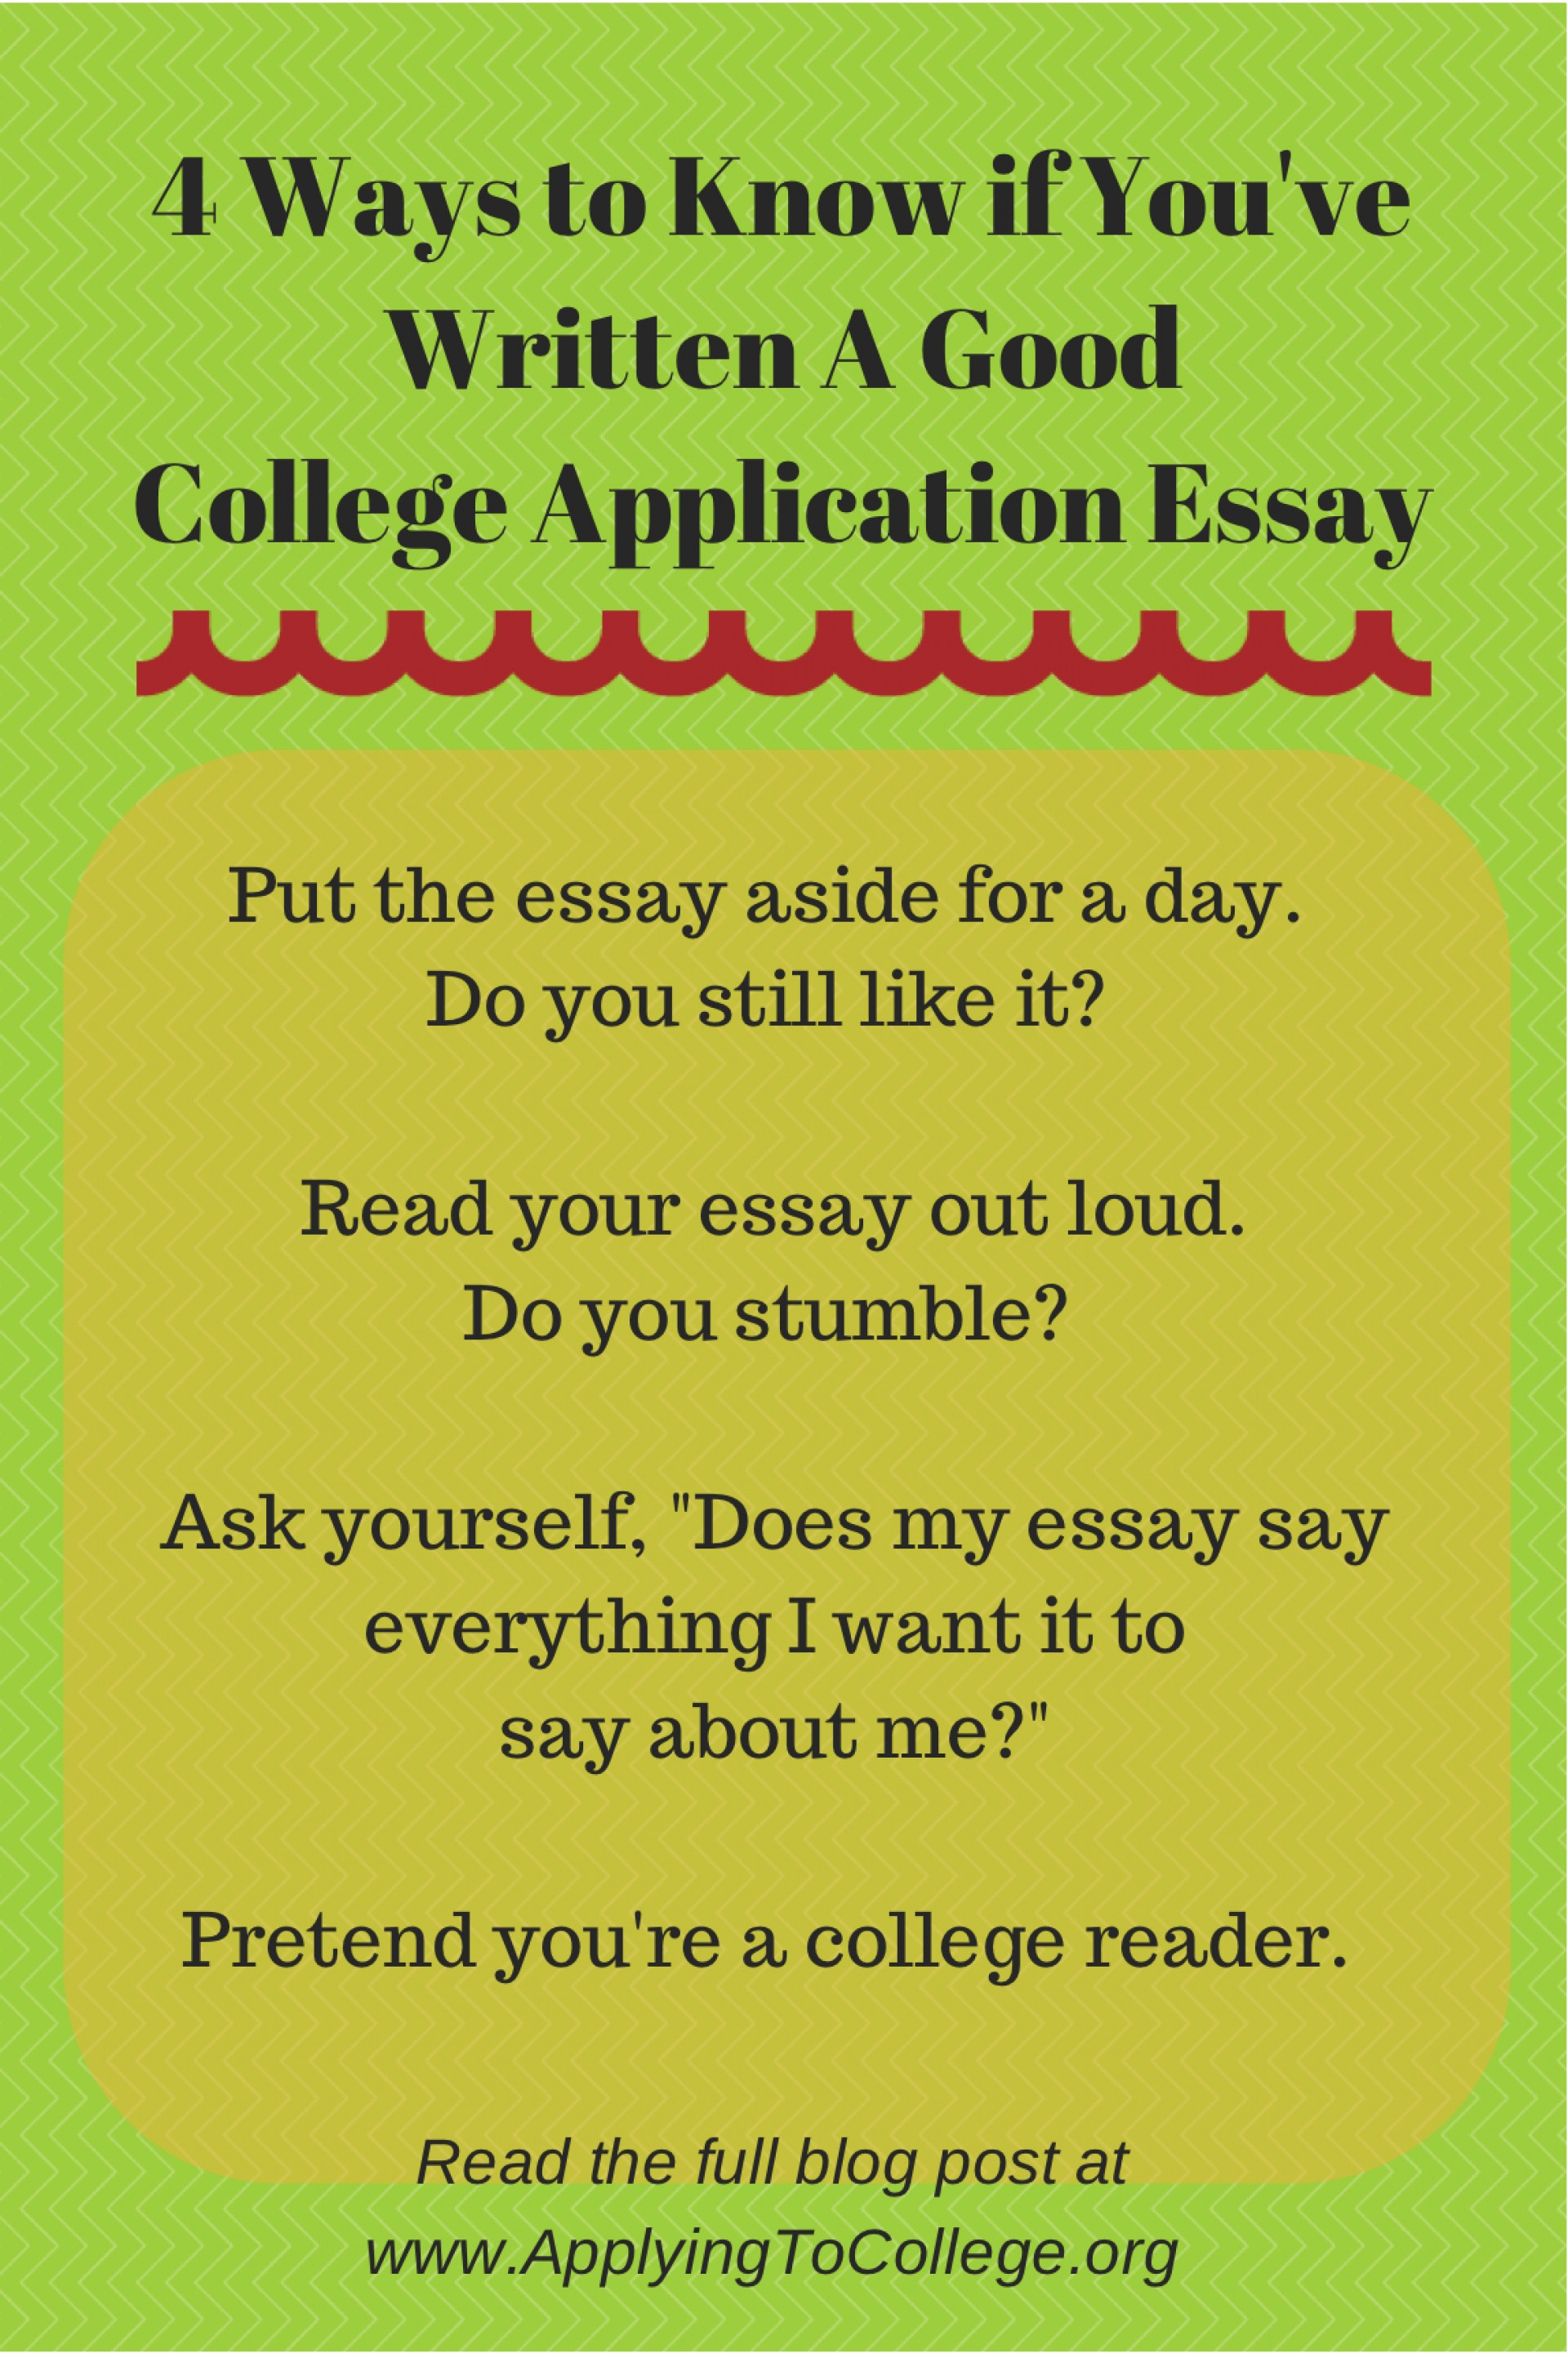 019 Tips To Write Good Essay Example 4ways Know If Youve Marvelous A Sat Descriptive Narrative 1920